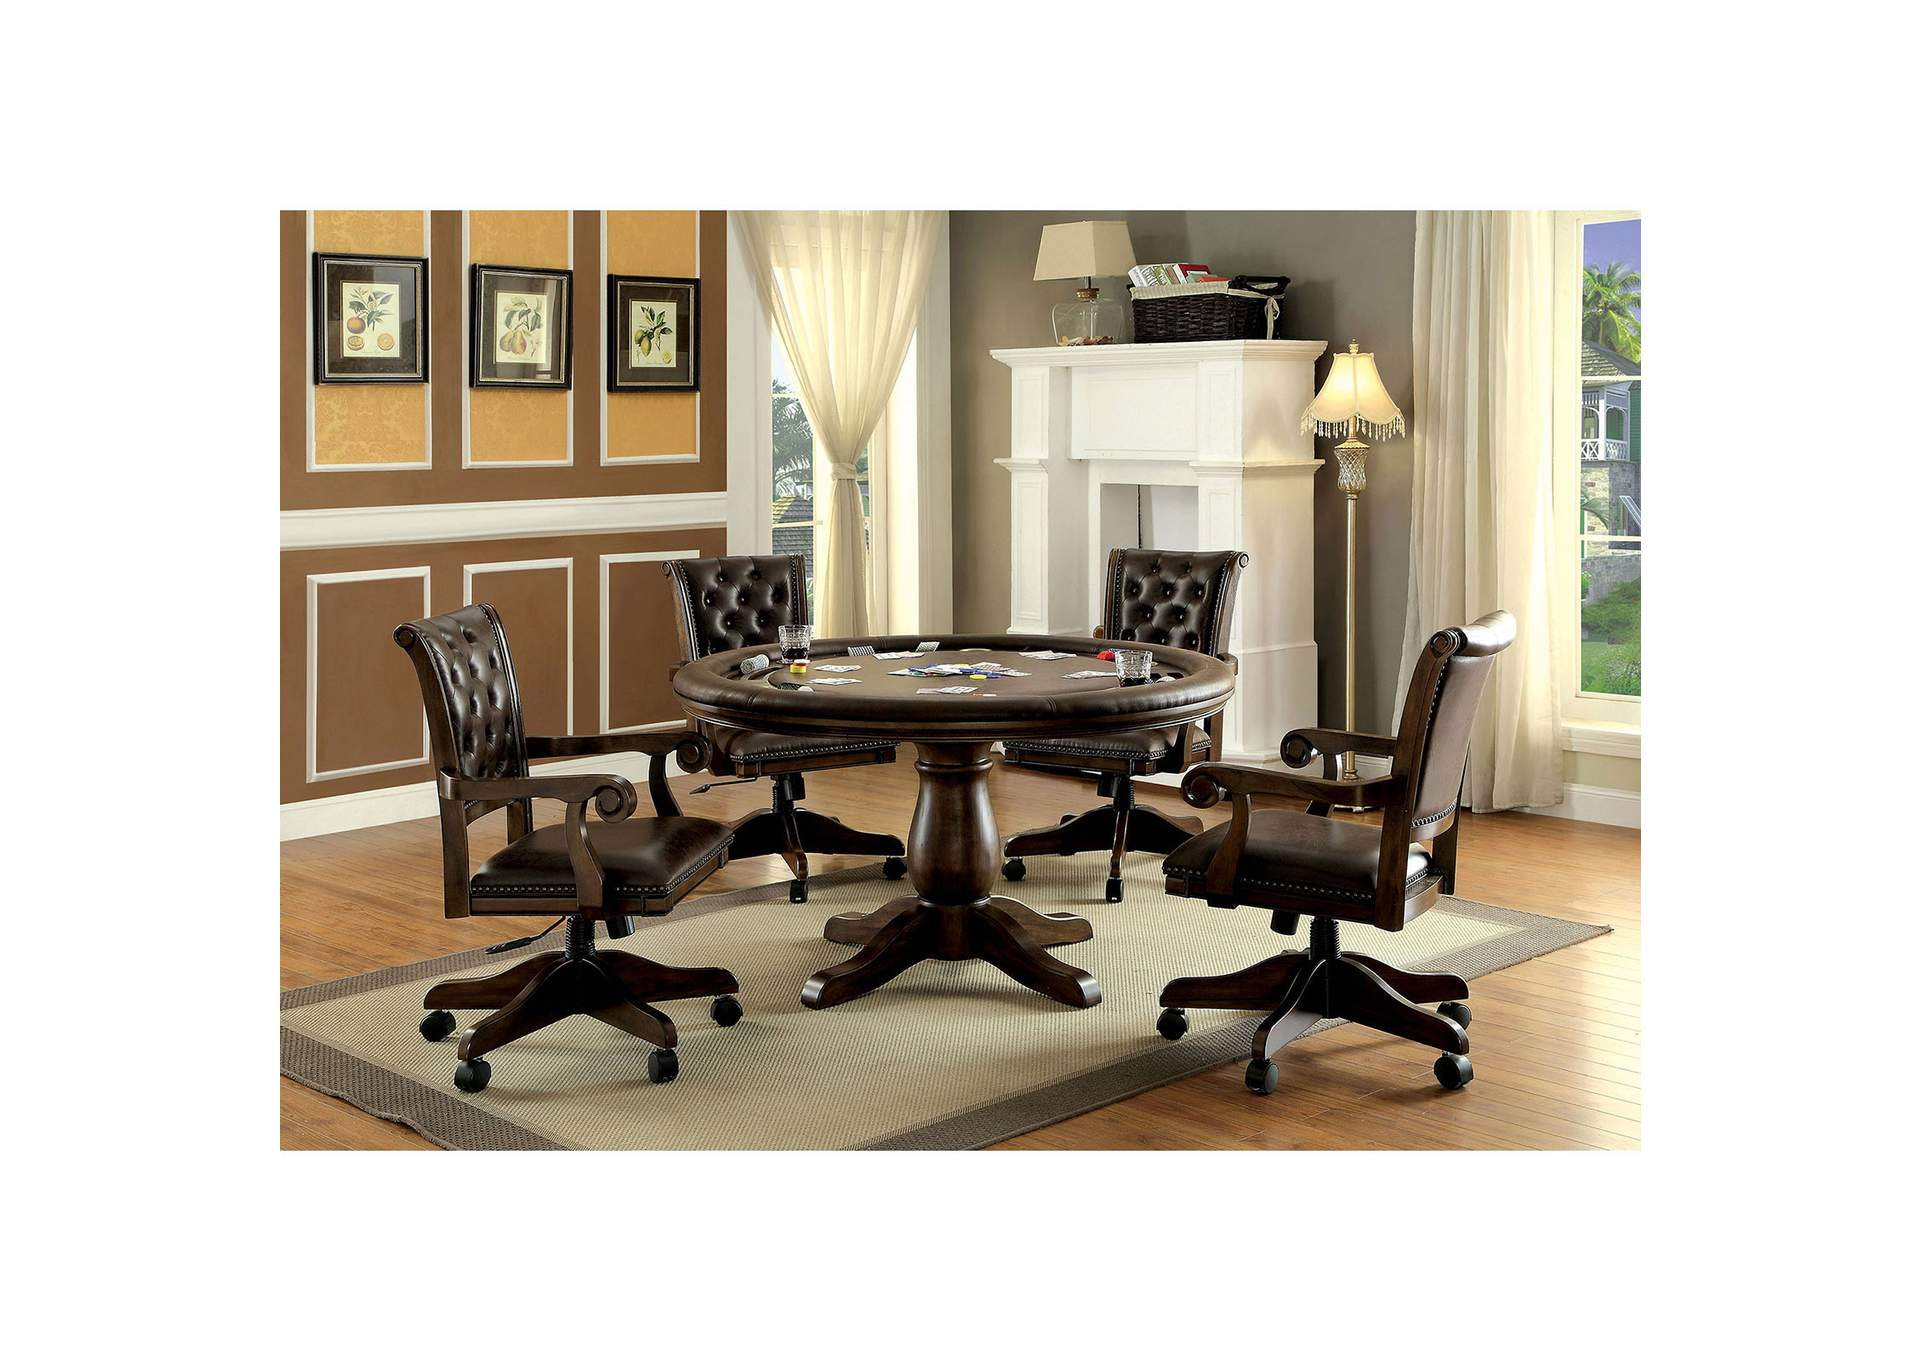 Furniture ville bronx ny kalia brown game table for Furniture ville